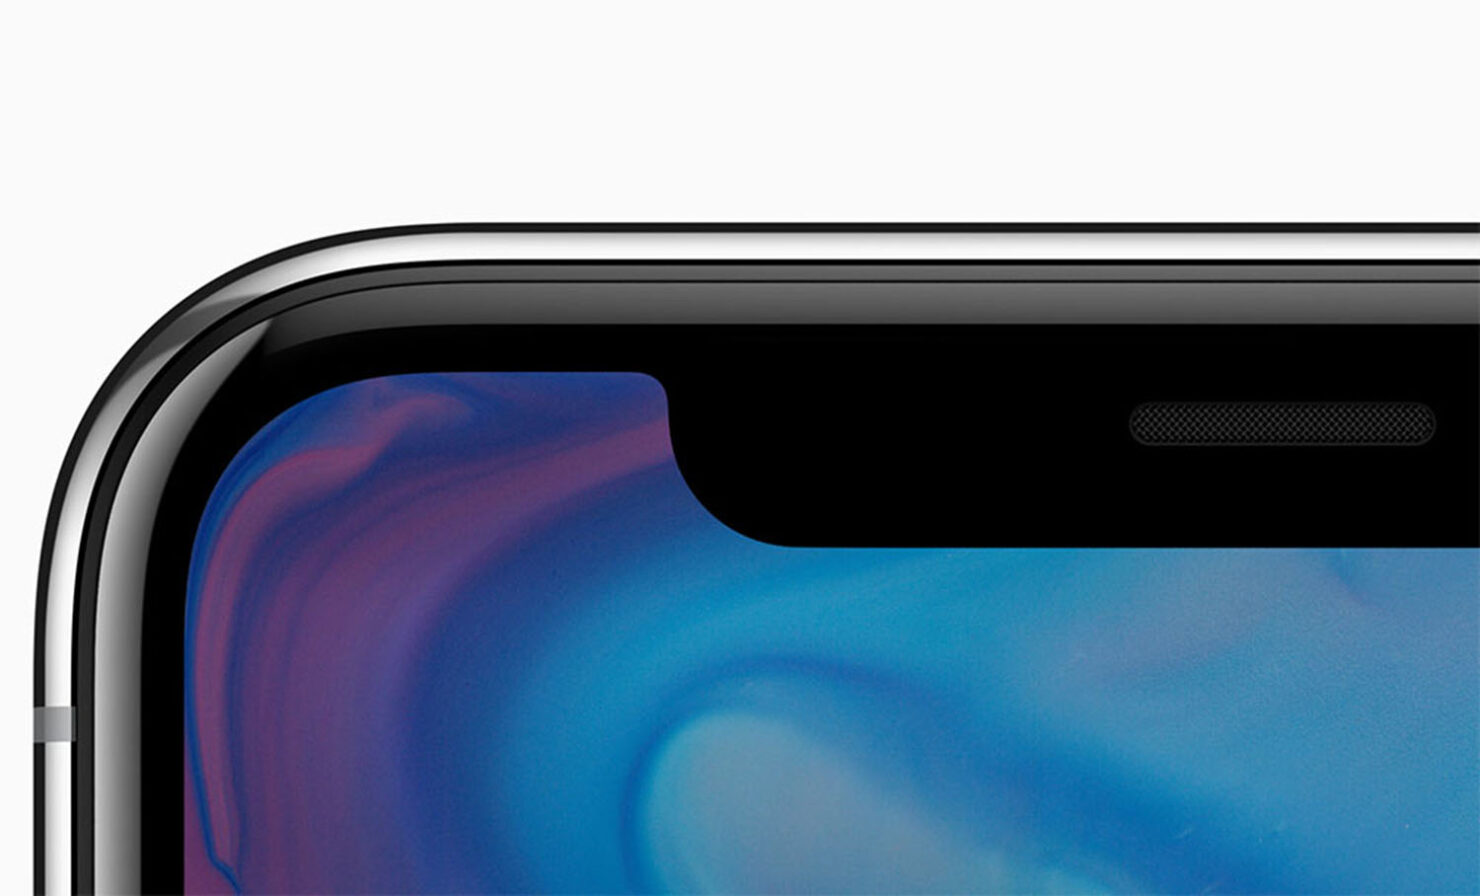 iPhone 11 model names, OS release date and new iPads revealed in leaked document